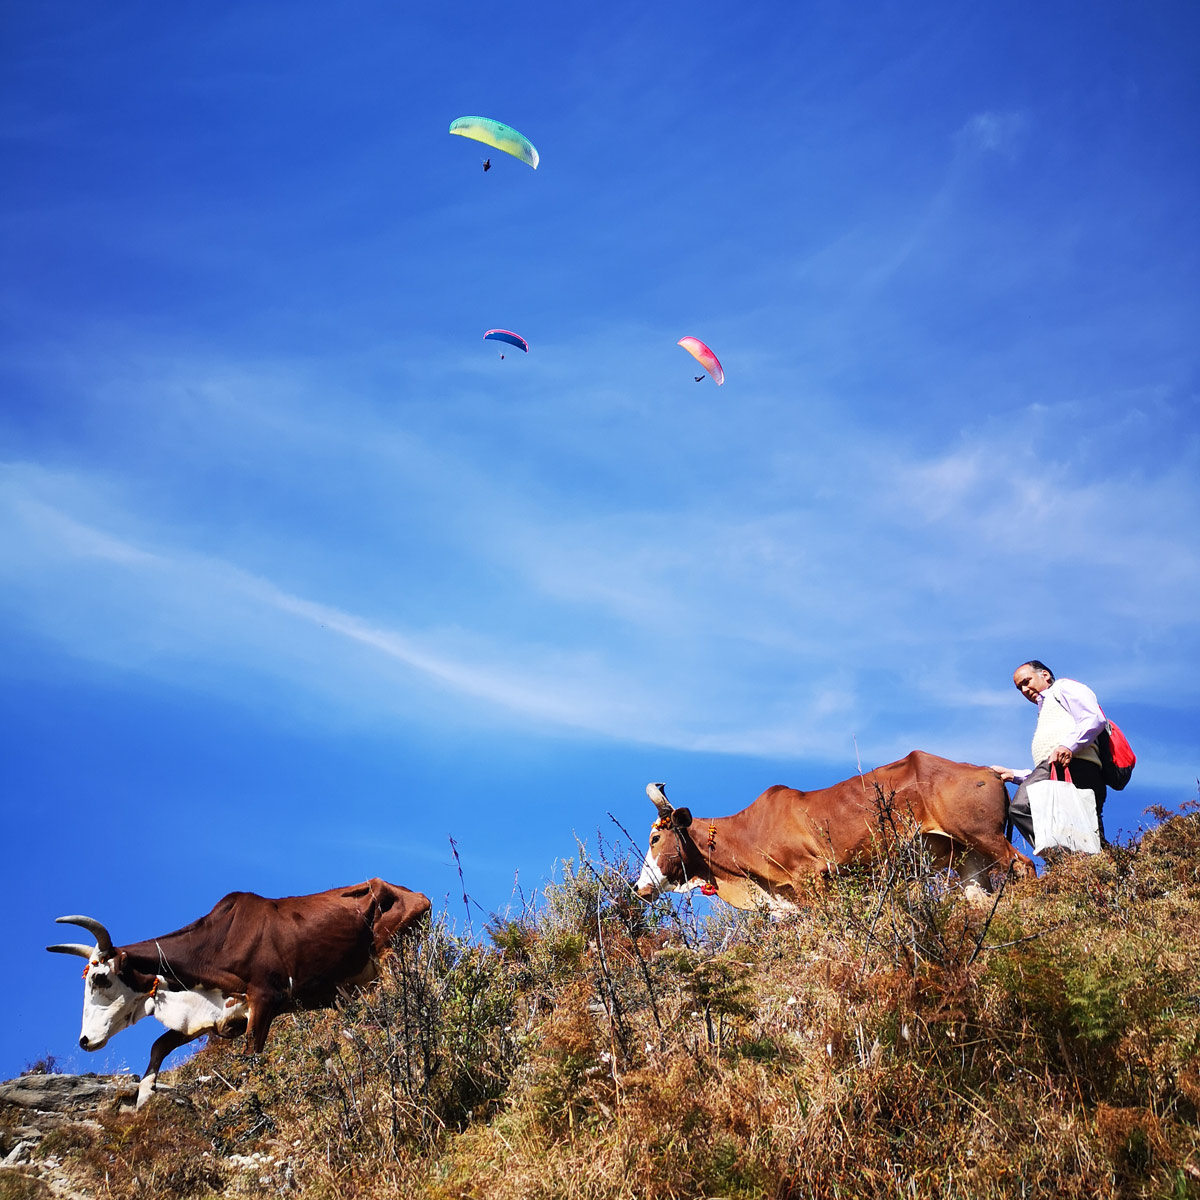 Paragliding Bir (Himalaya): climbing out over cows